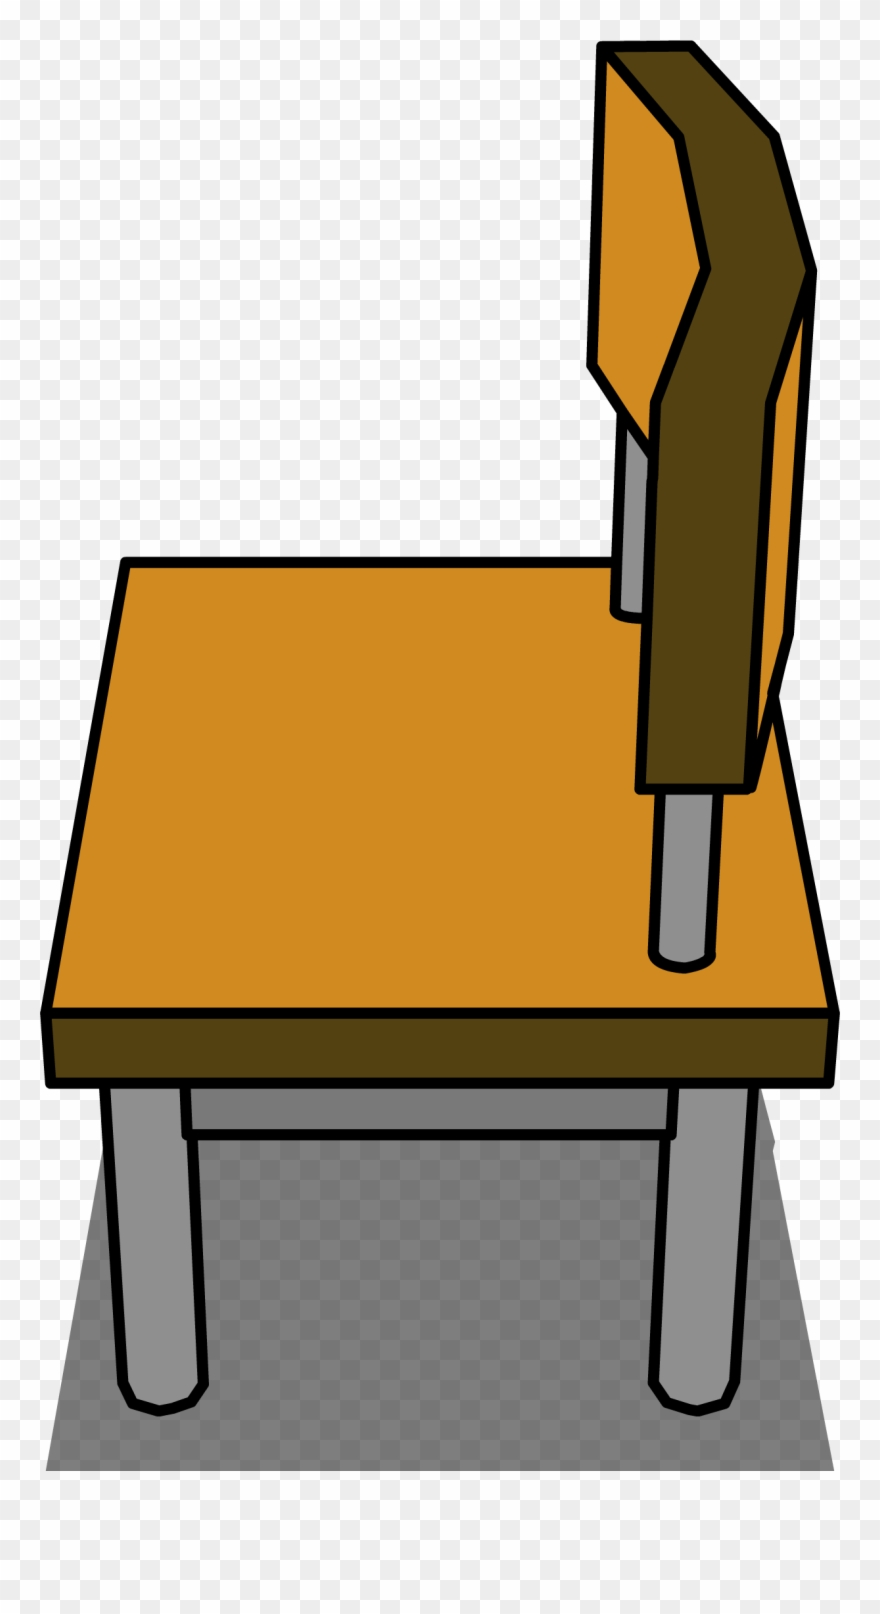 hight resolution of igloo clipart history classroom chair png download